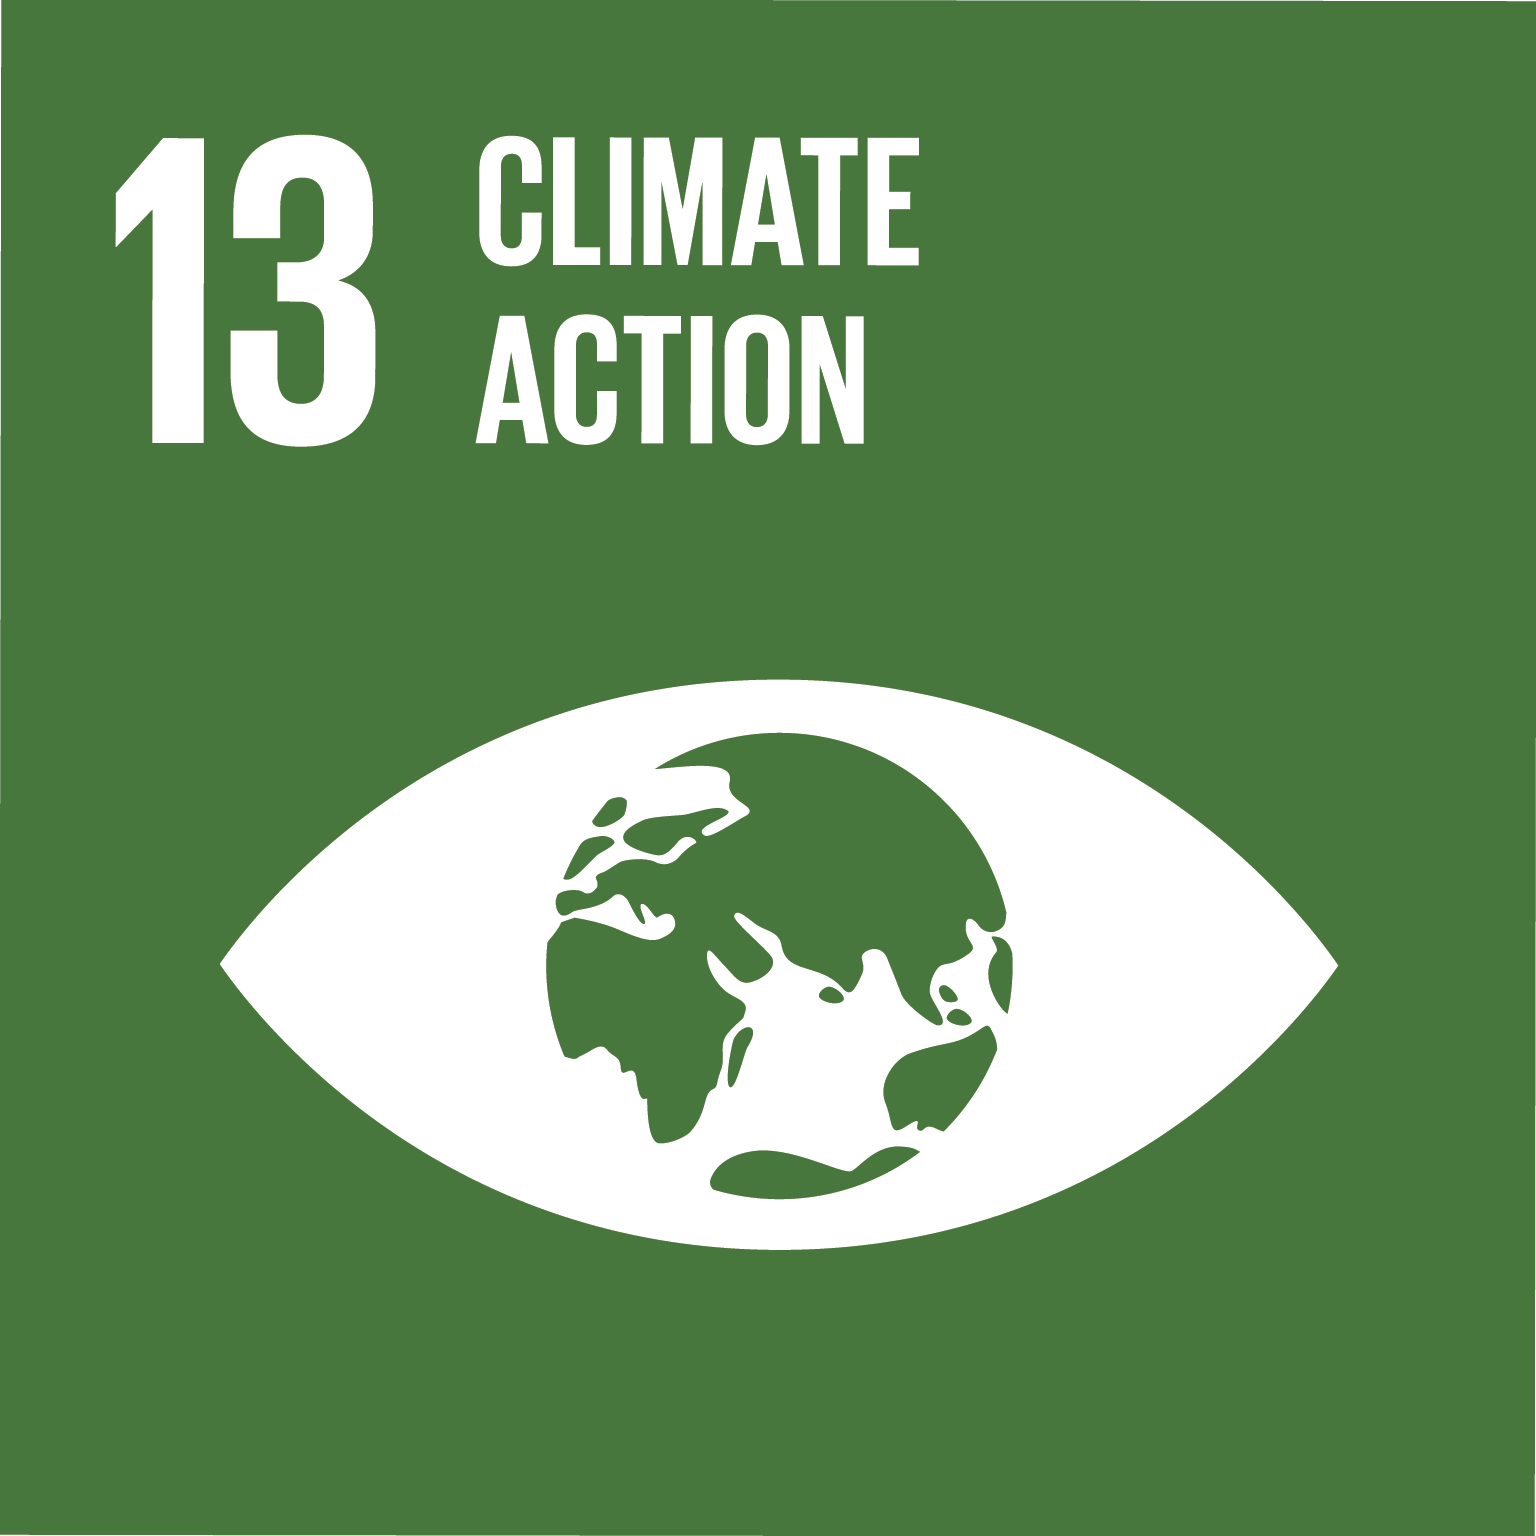 UN Sustainable goal - climate action